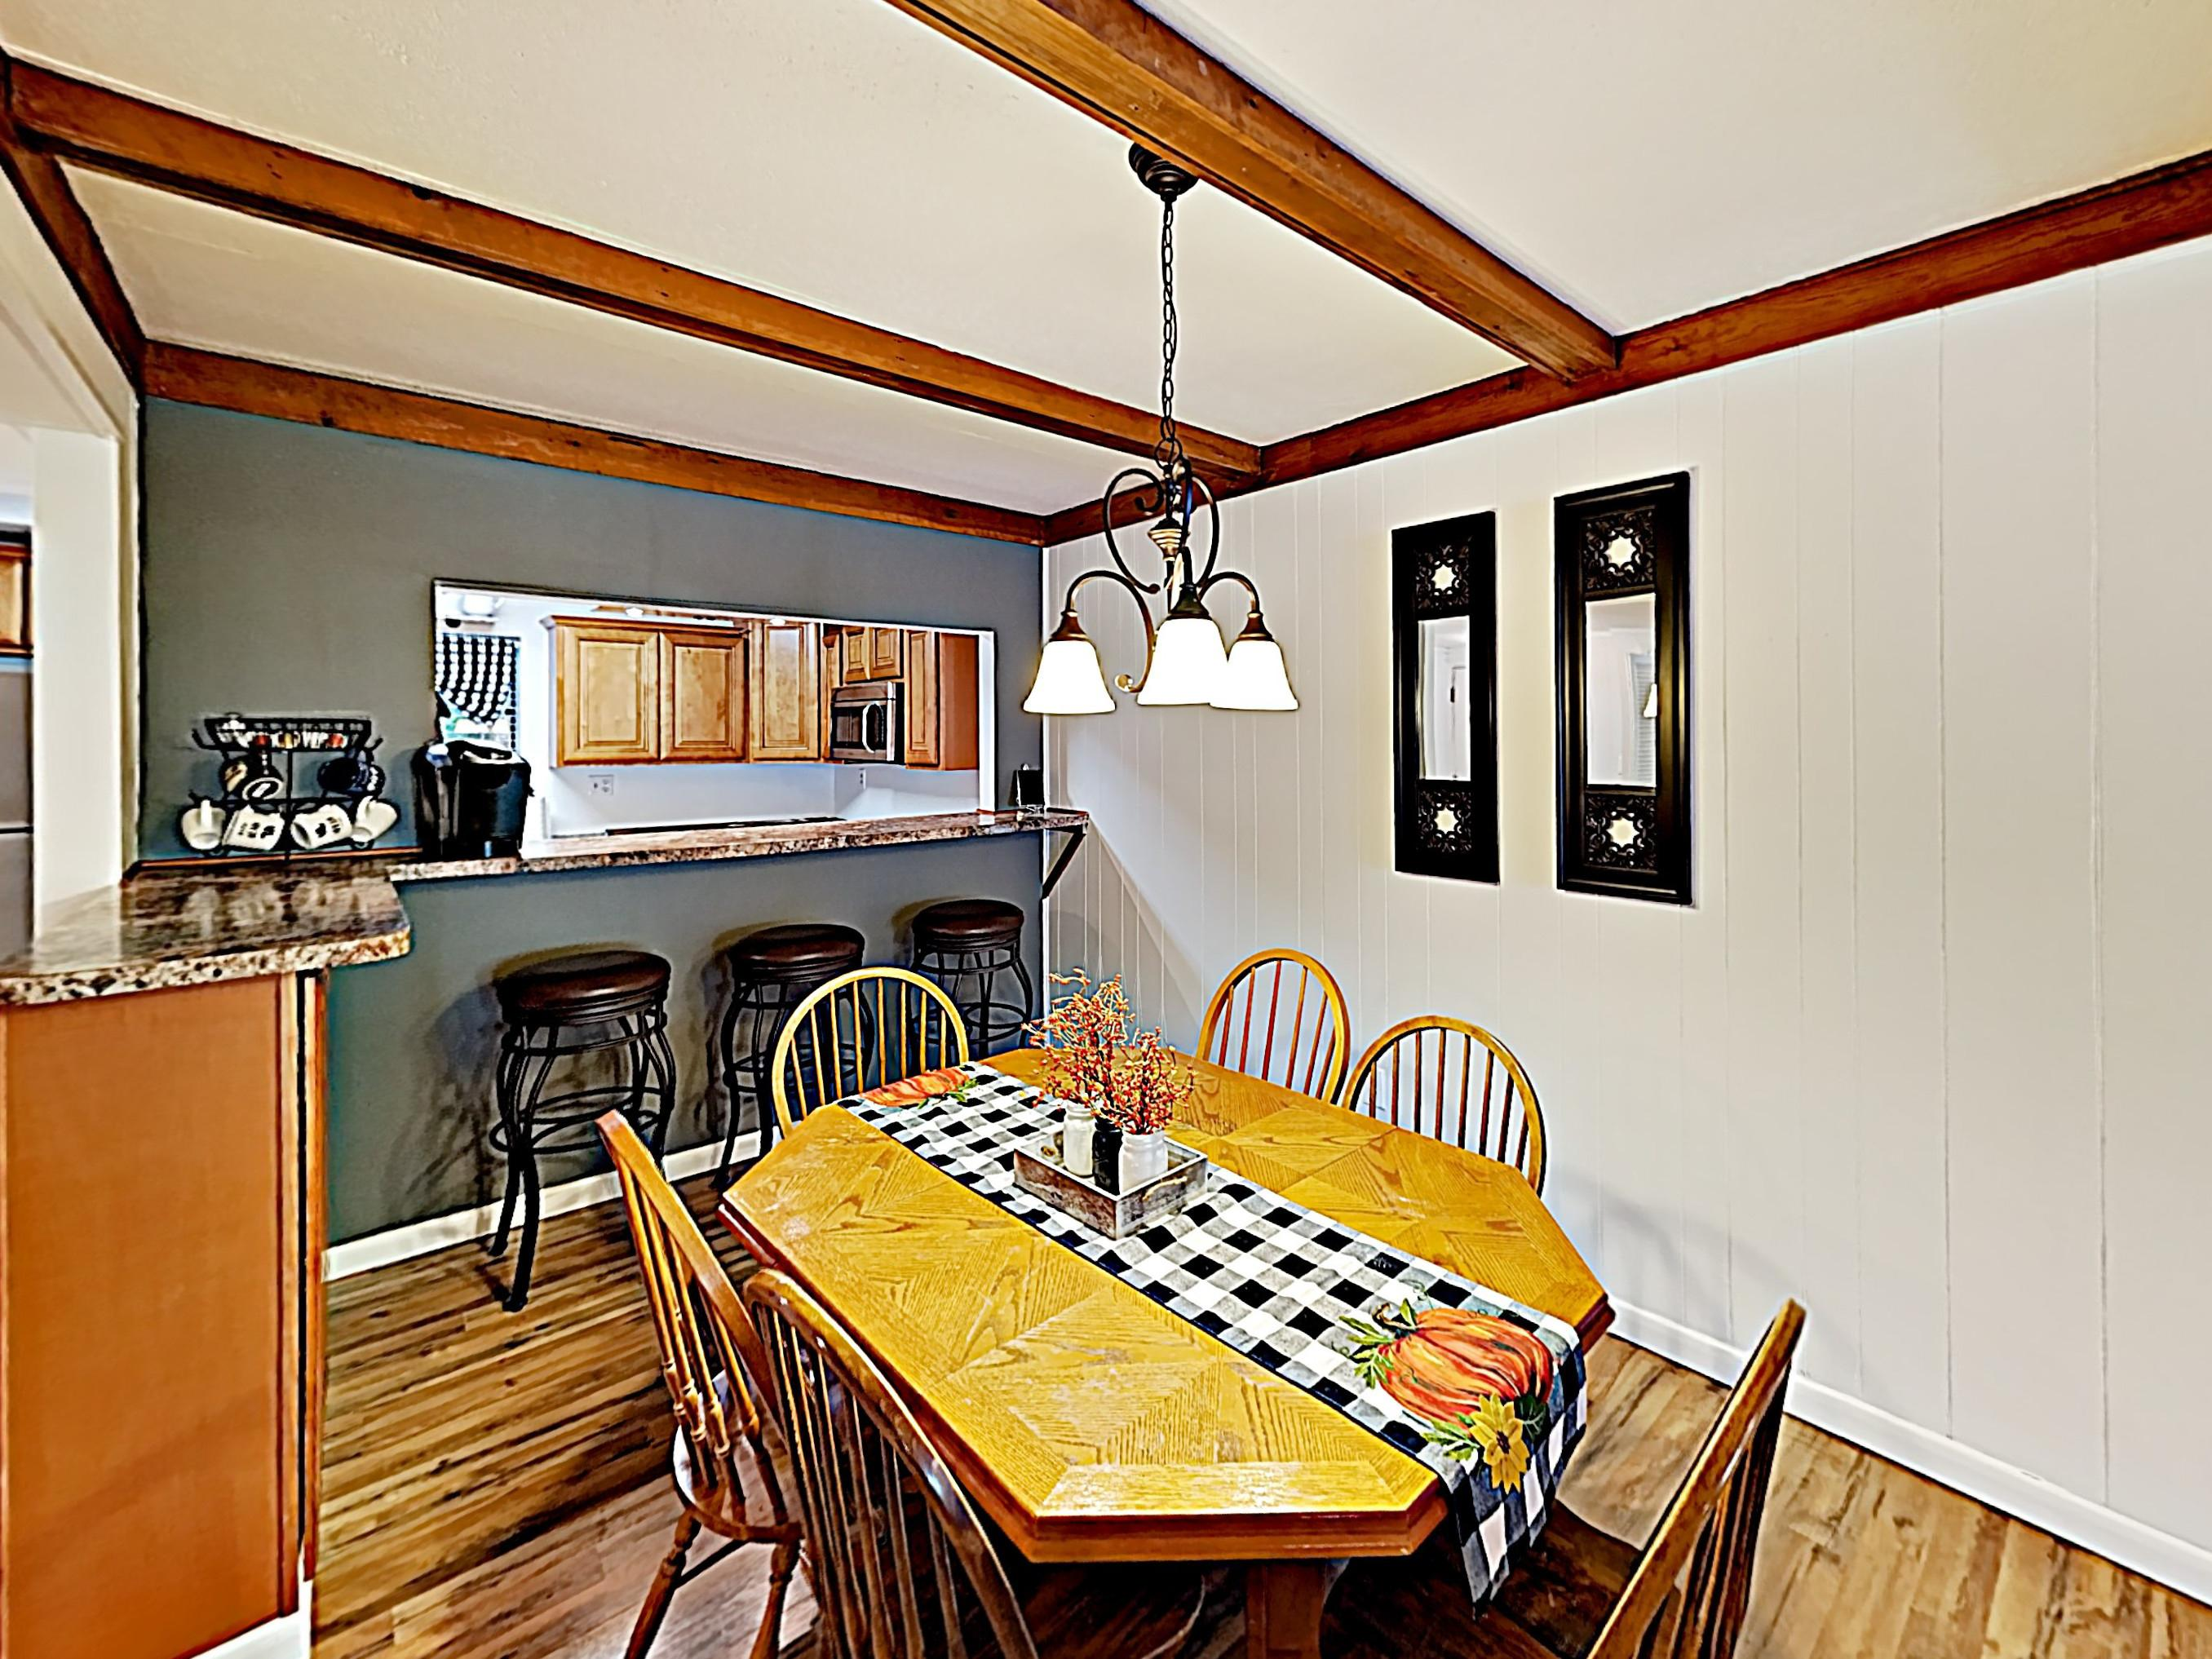 Enjoy home-cooked vacation meals together at the wooden dining table, set for 6.